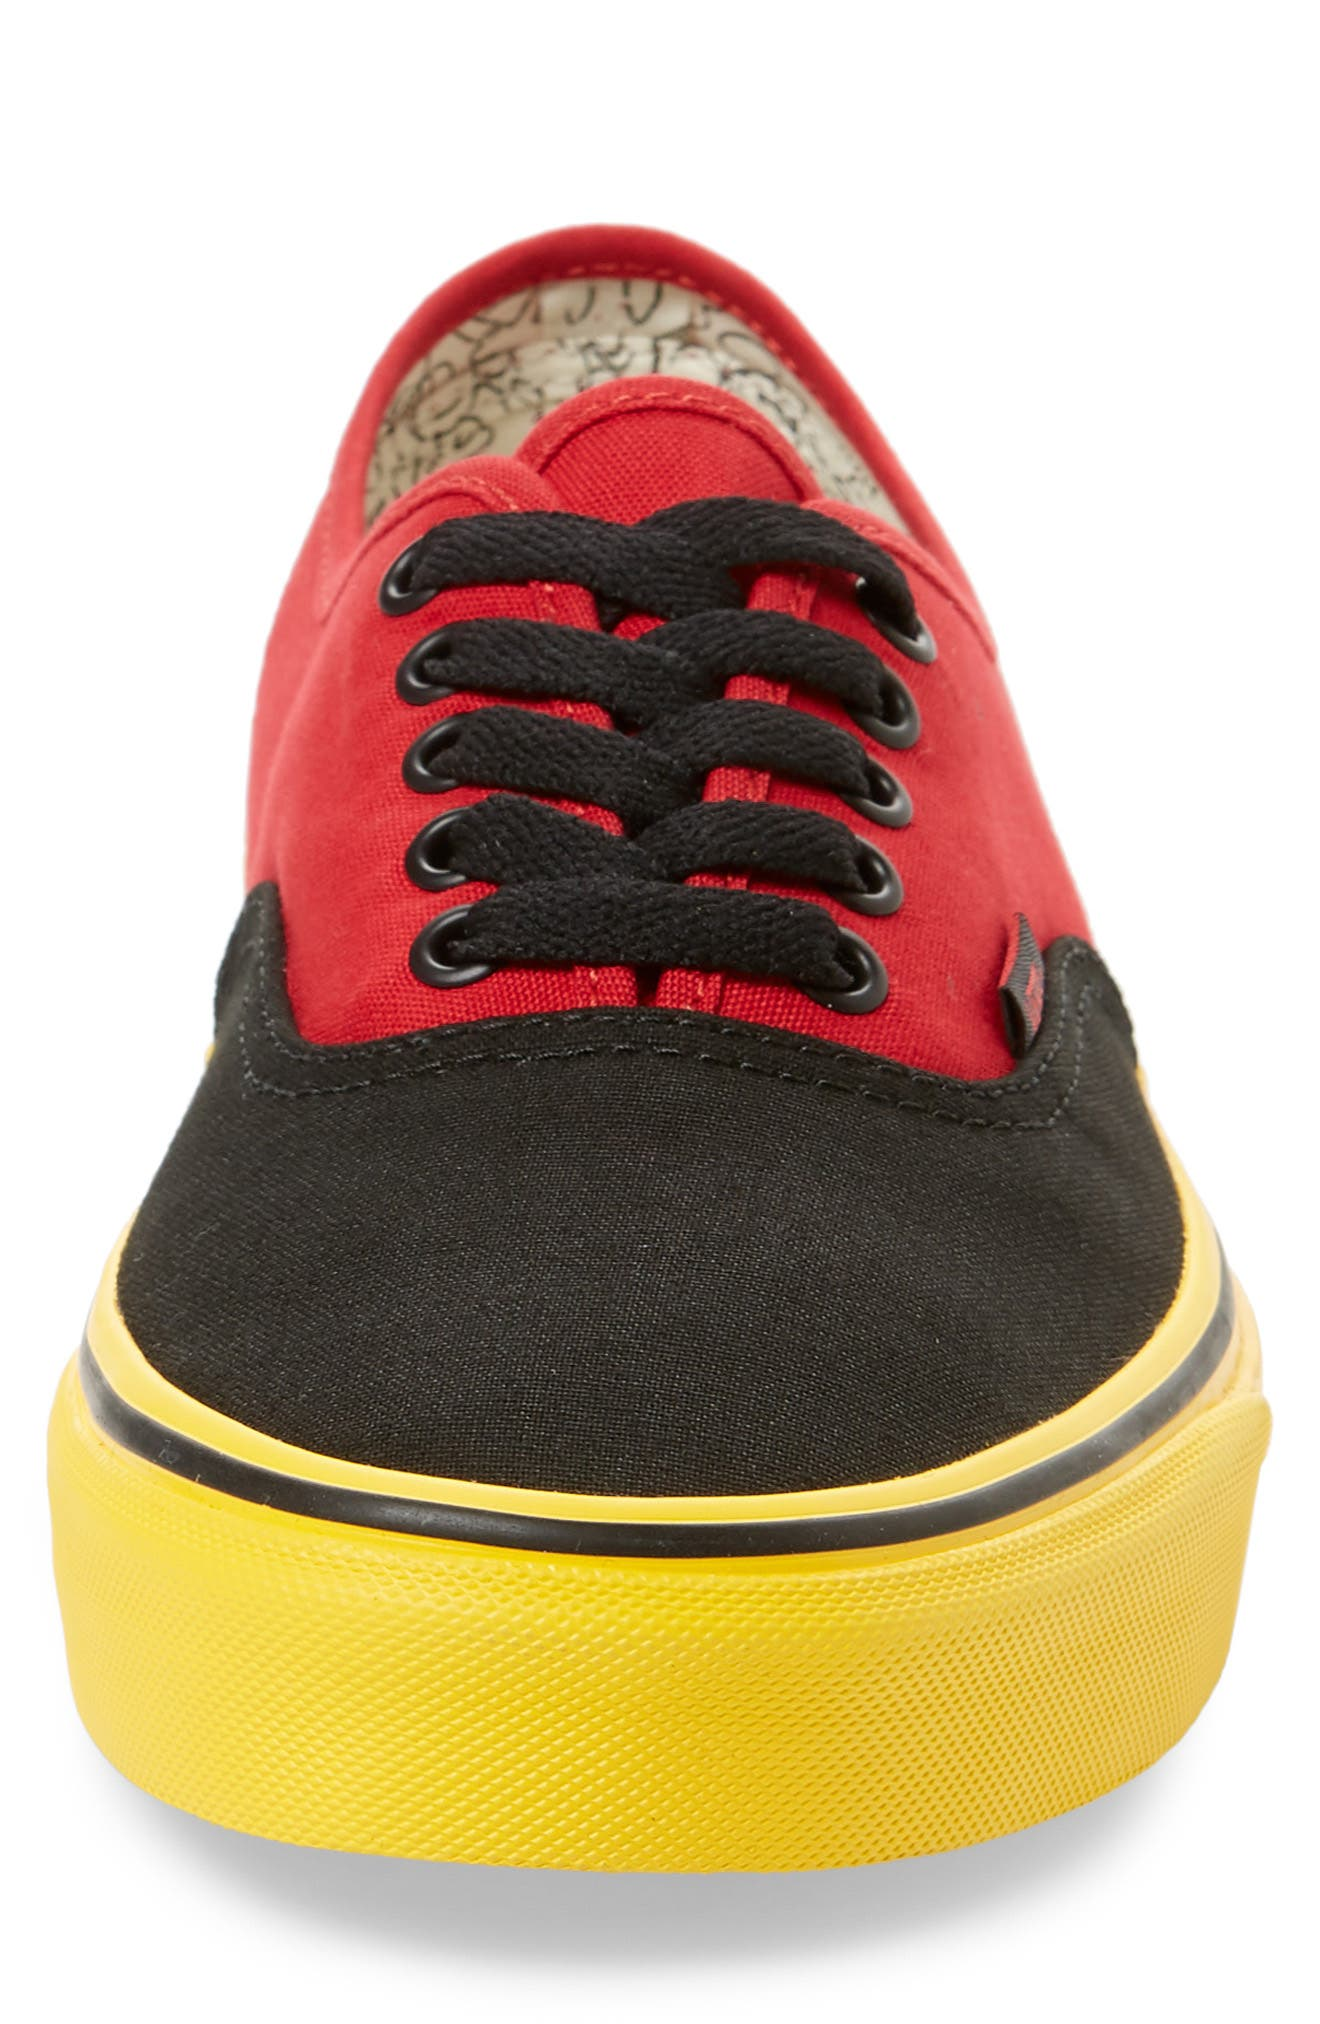 x Disney<sup>®</sup> Authentic Low Top Sneaker,                             Alternate thumbnail 4, color,                             DISNEY MICKEY/ RED/ YELLOW